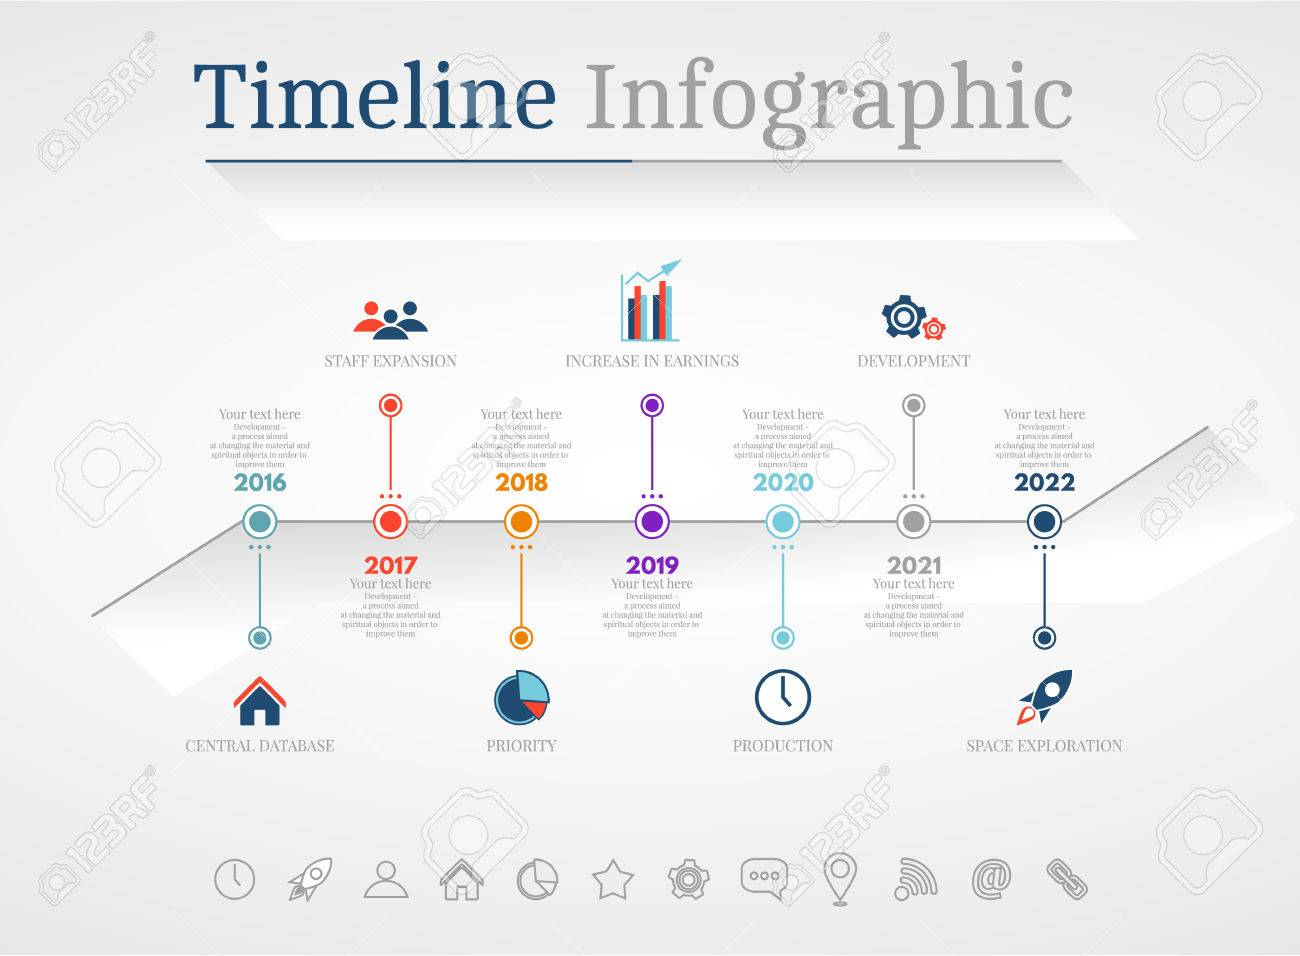 Timeline Infographic Design Templates # 3. With Paper Tags. Idea ...